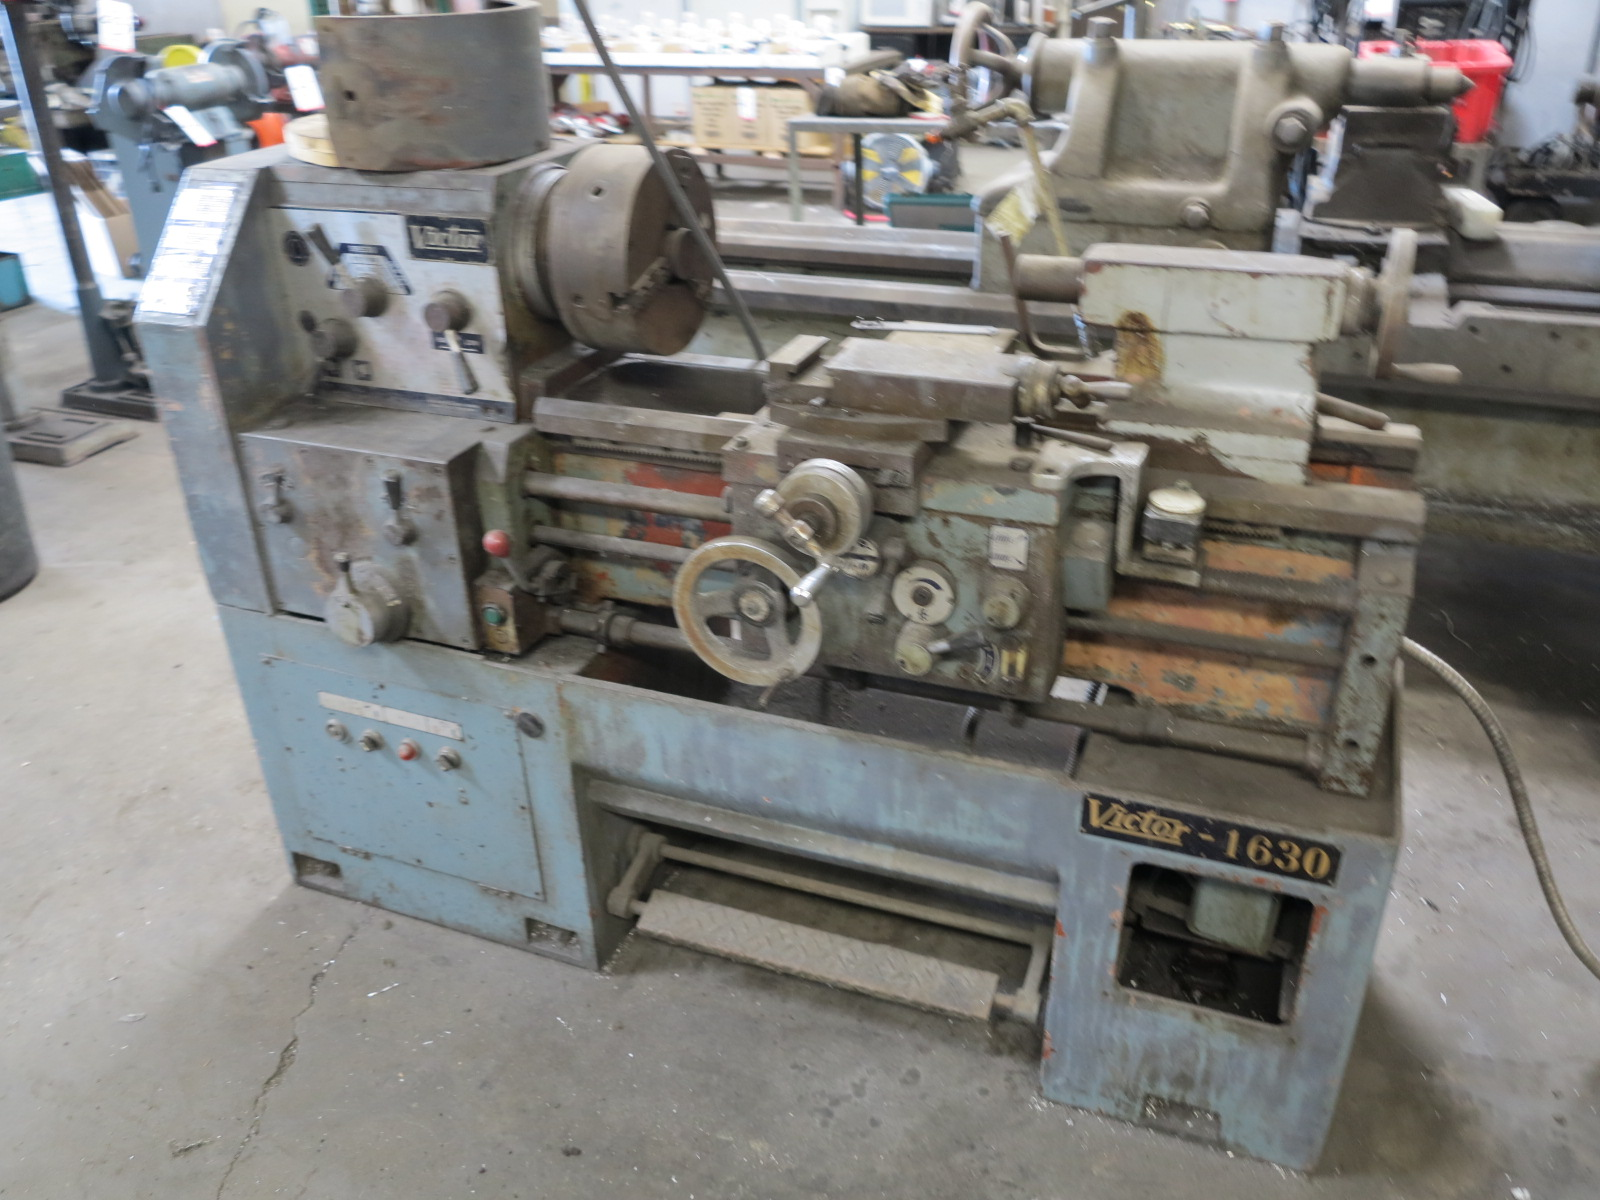 "VICTOR 1630 LATHE, W/ 10"" 3-JAW CHUCK, TAILSTOCK - Image 3 of 3"